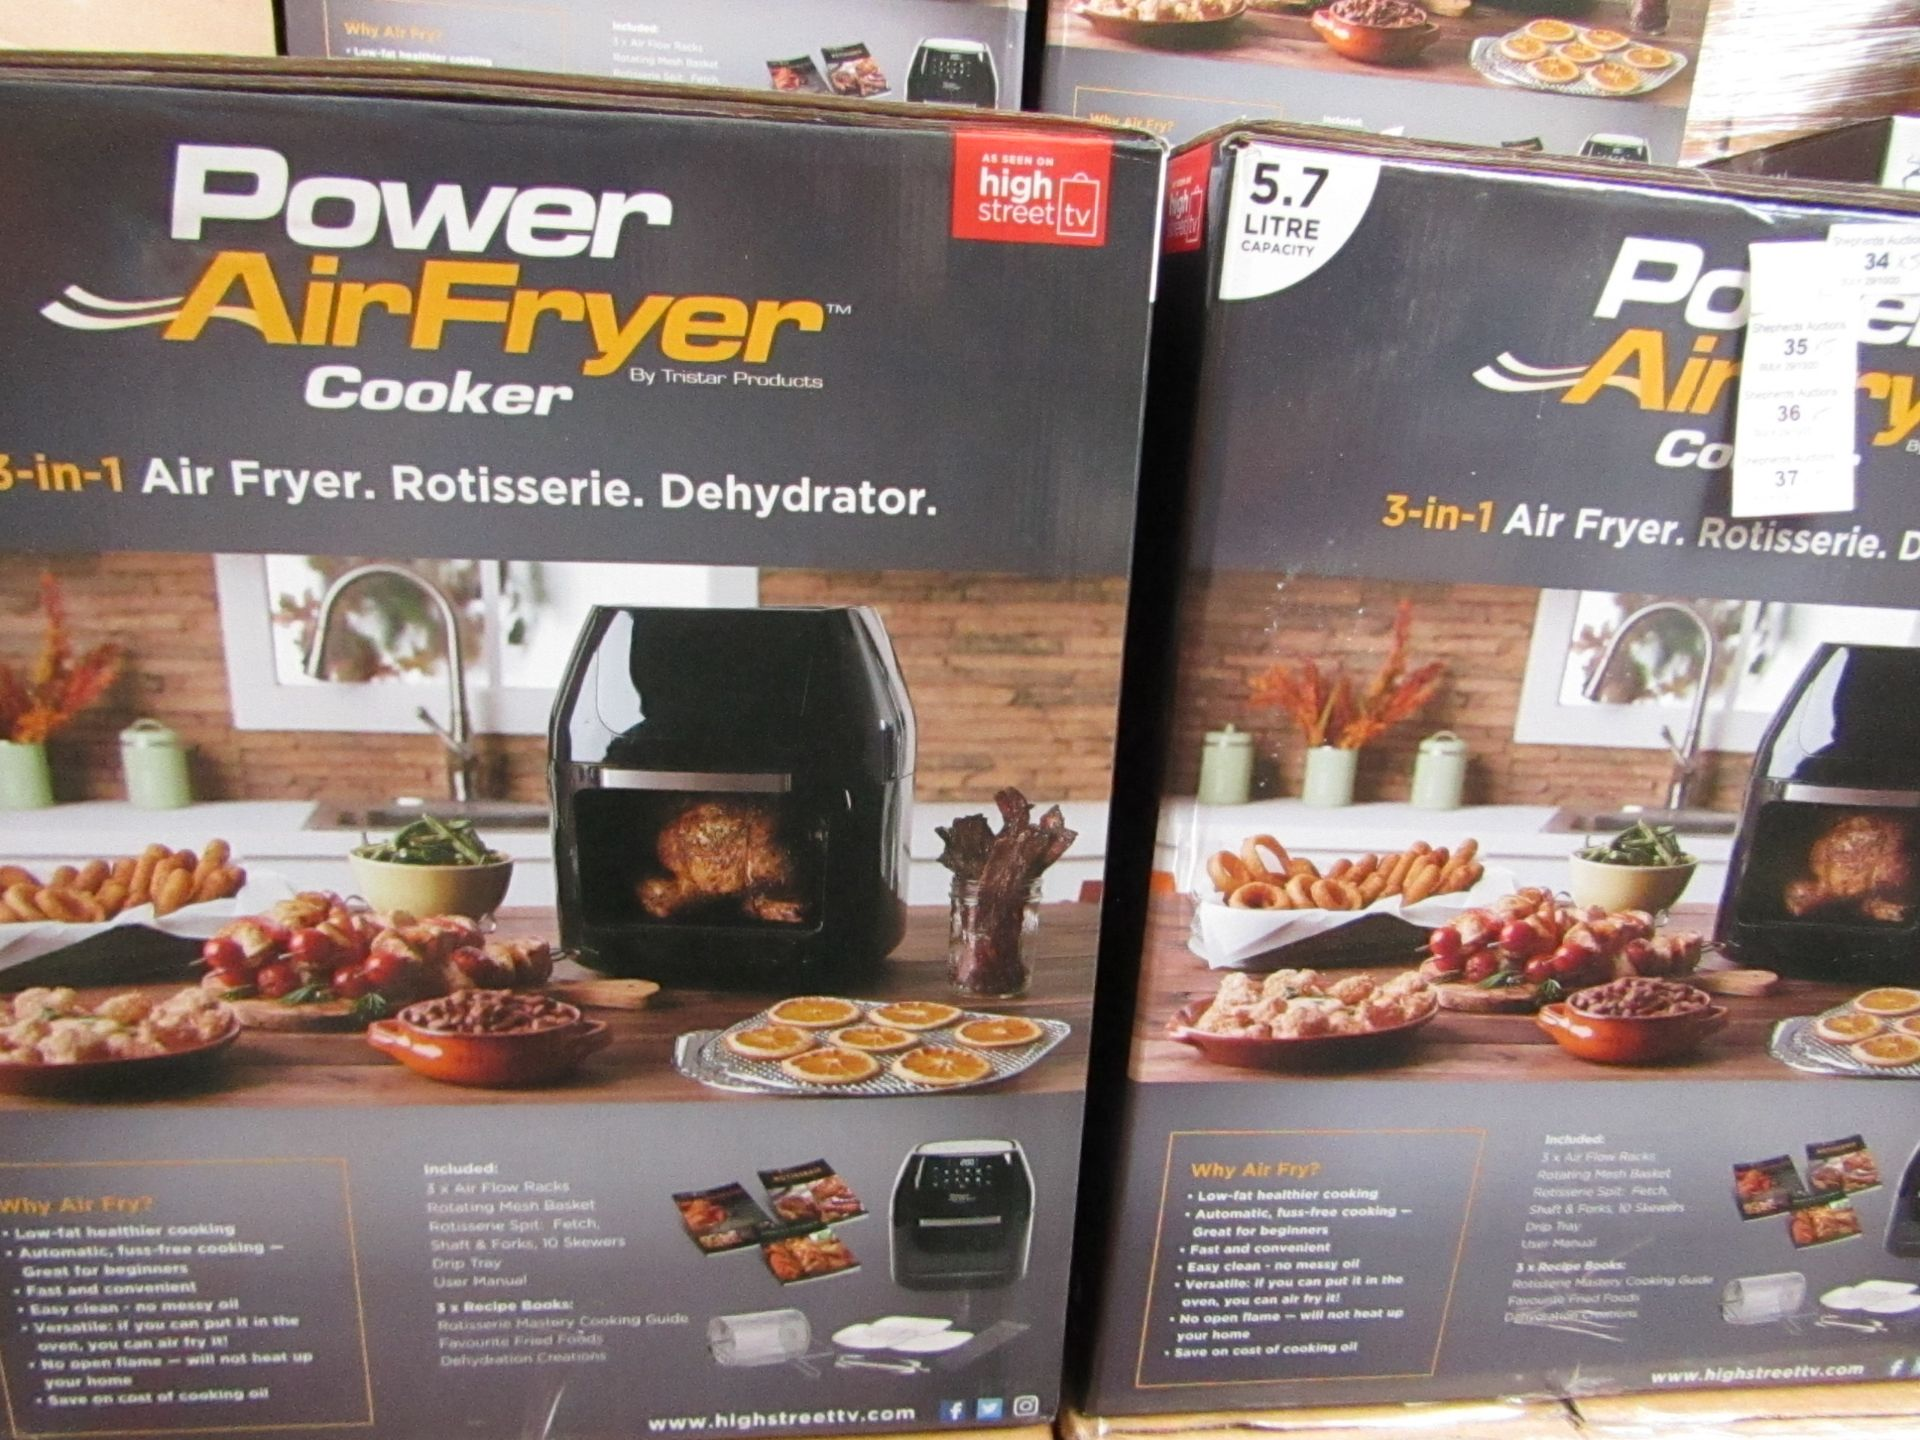   4X   PRESSURE KING PRO 12 IN 1 5LTR PRESSURE COOKER   UNCHECKED AND BOXED SOME MAY BE IN NON